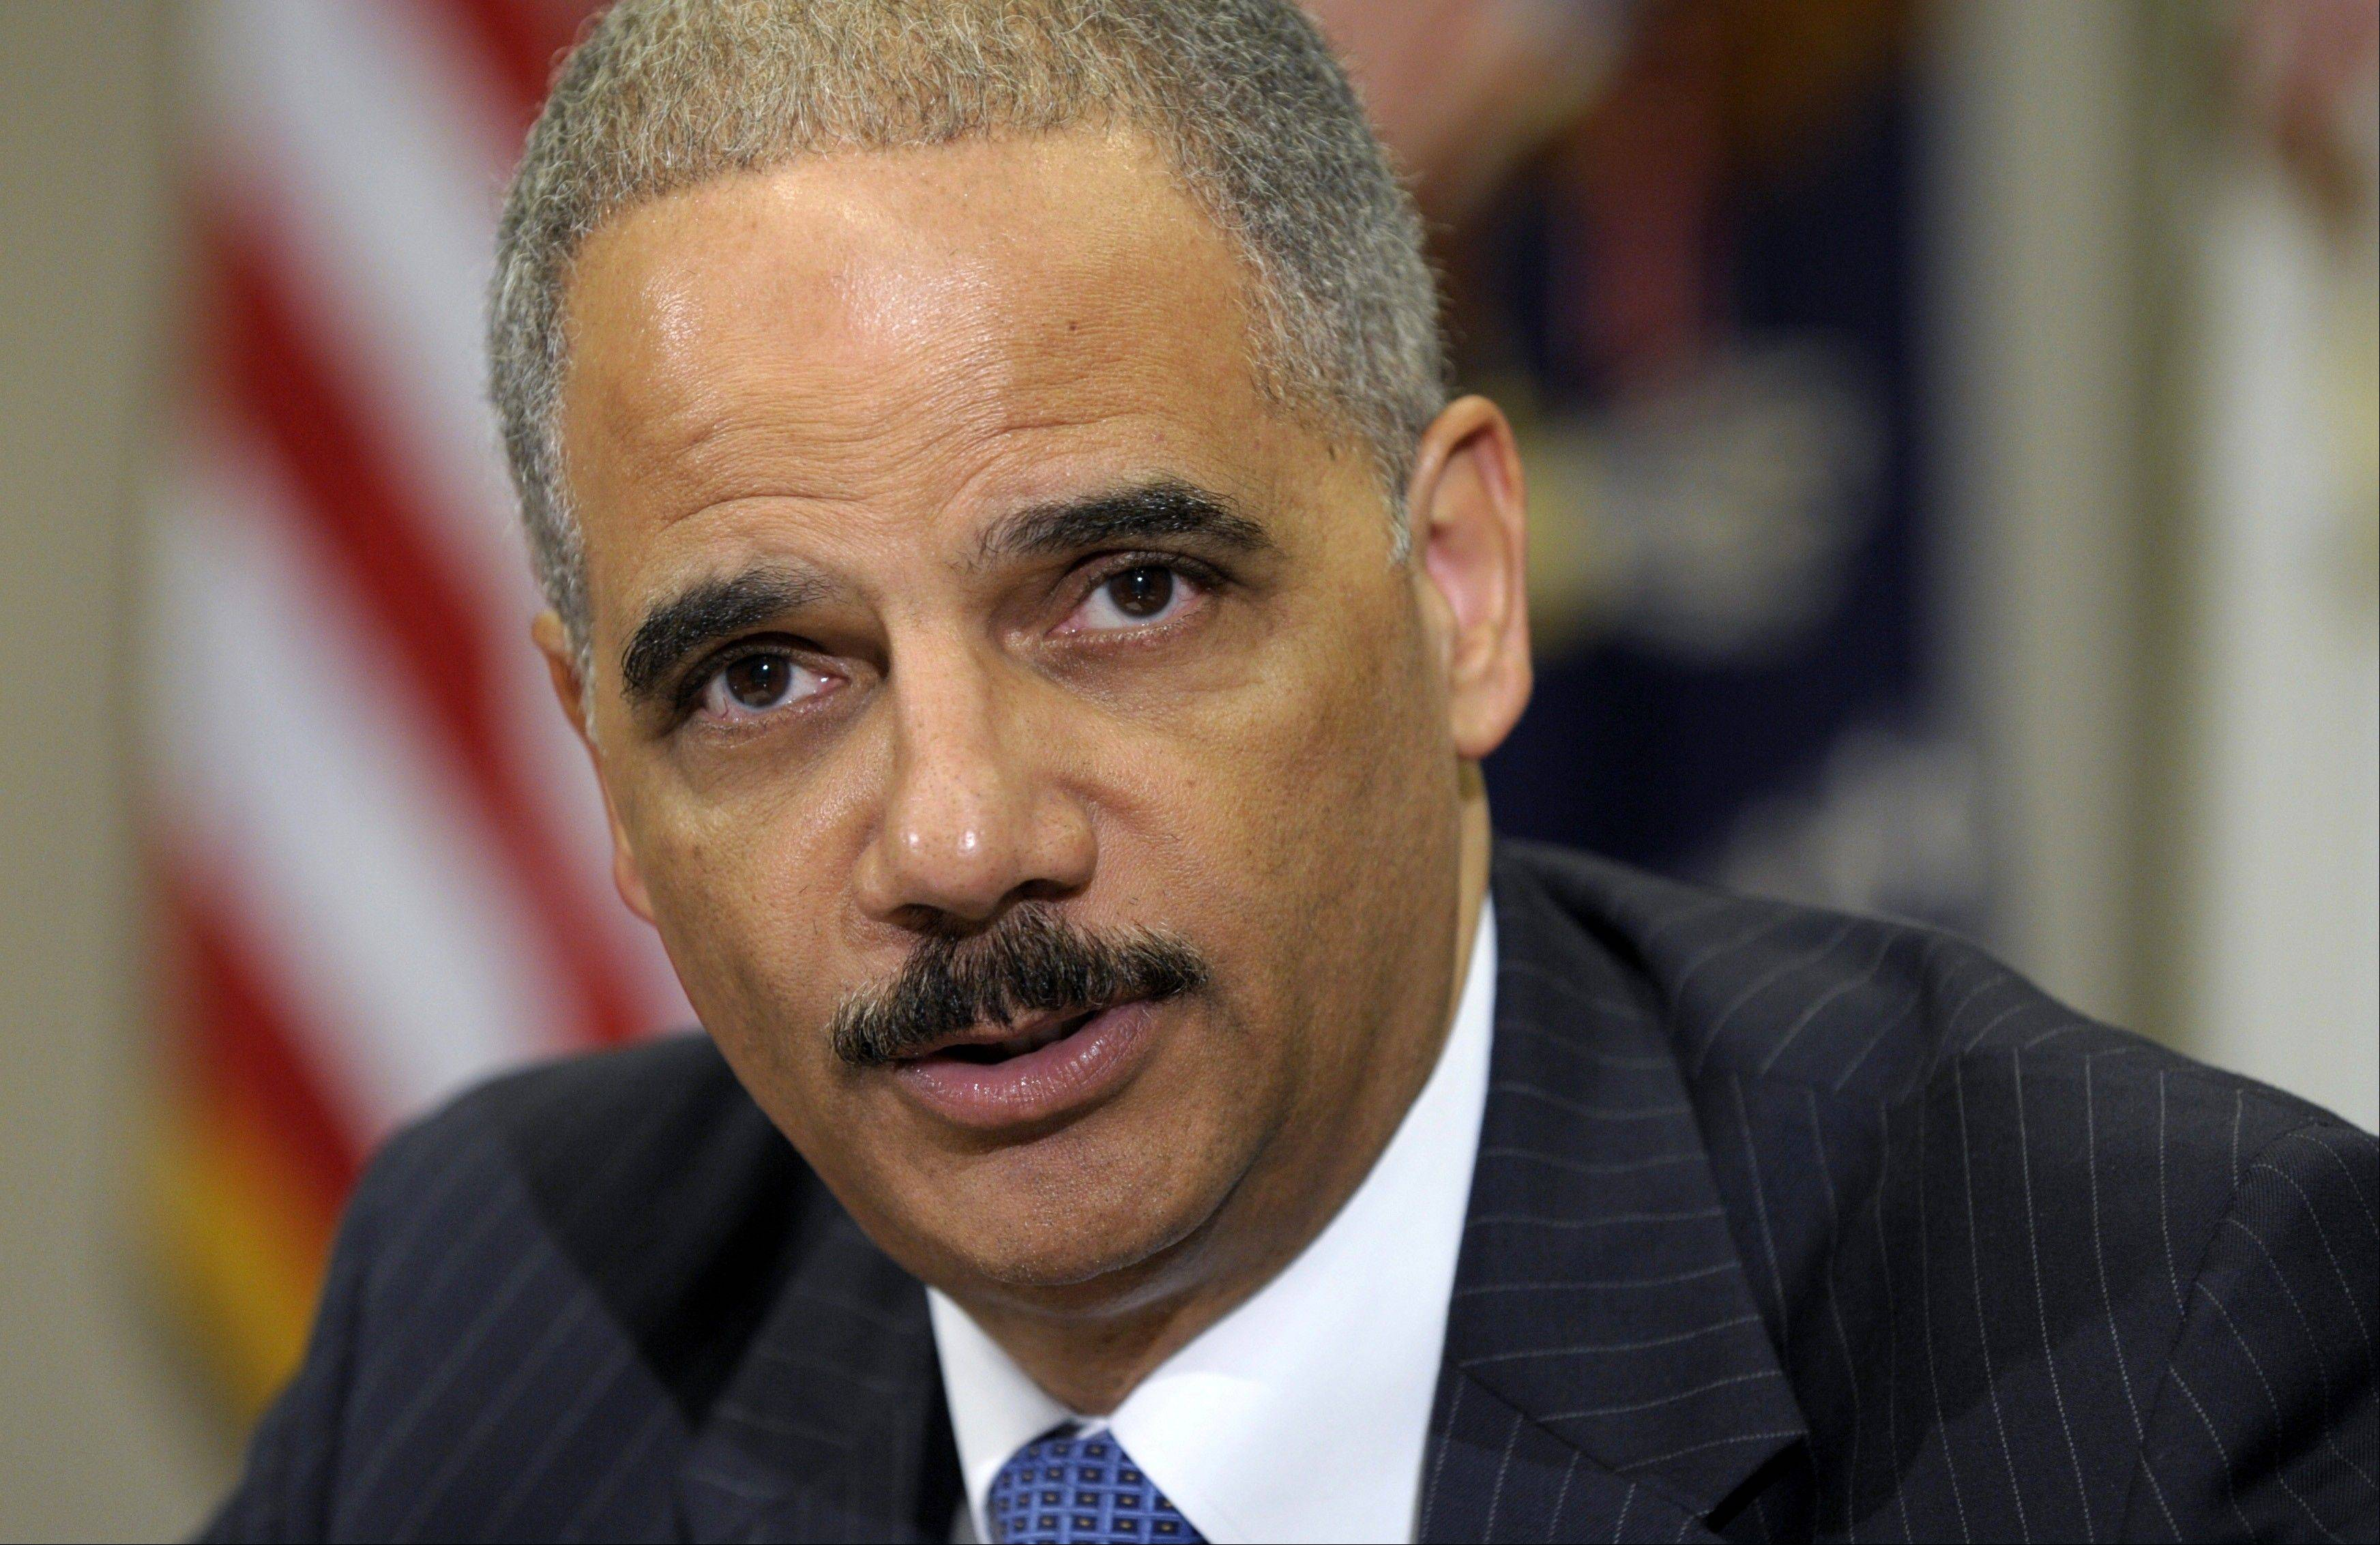 In this July 26, 2012 file photo, Attorney General Eric Holder speaks in the Cabinet Room of the White House in Washington. The Republican-run House has asked a federal court to enforce a subpoena against Attorney General Eric Holder. The subpoena demands that Holder produce records related to a bungled gun-tracking operation known as Operation Fast and Furious. The failure of Holder and House Republicans to work out a deal on the documents led to a vote in June that held the attorney general in contempt of Congress.